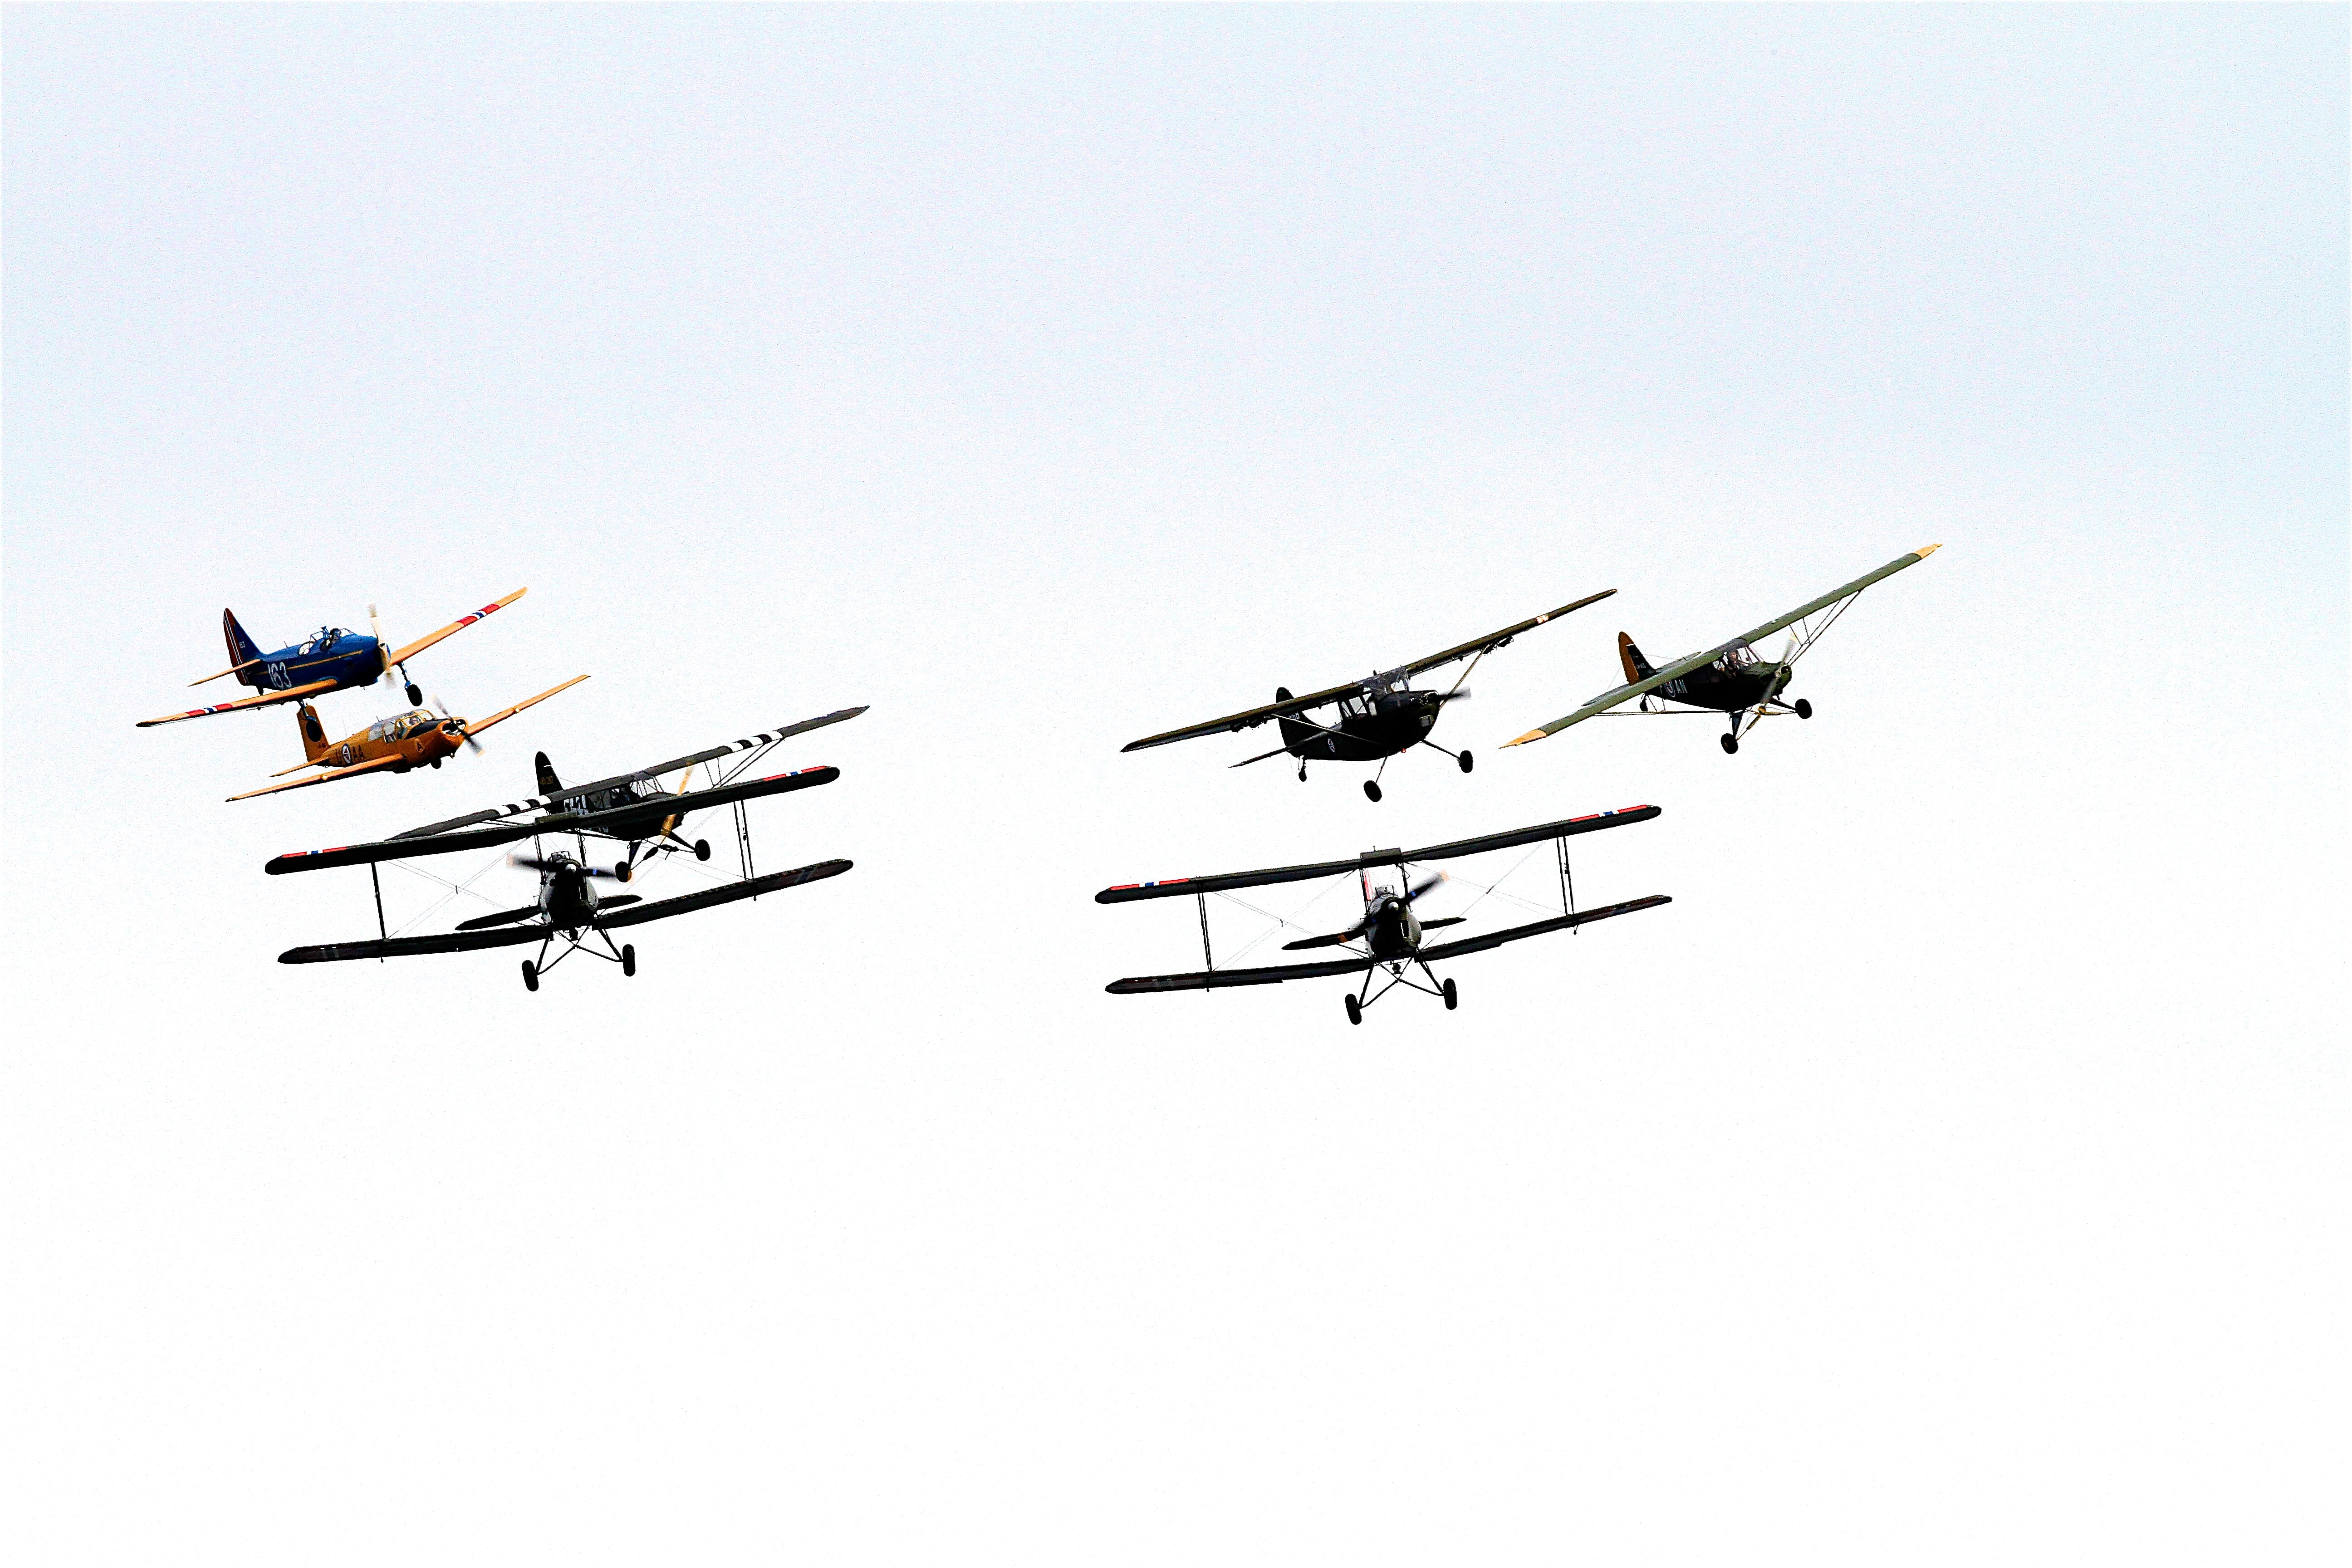 7 Biplane Flying on Air Under Clouds during Daytime